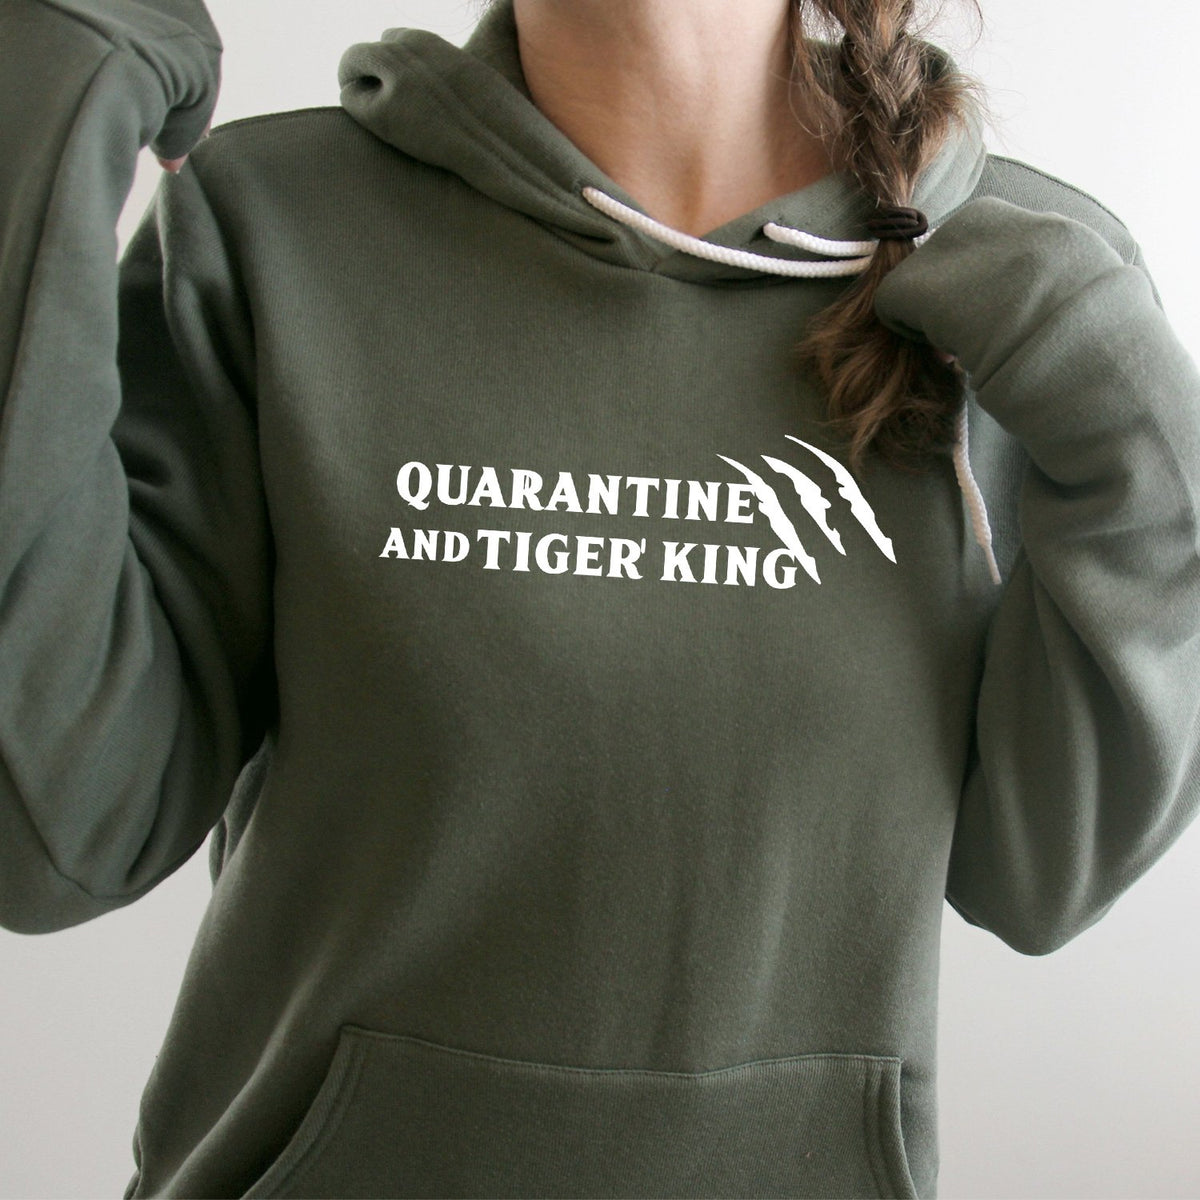 Quarantine and Tiger King - Hoodie Sweatshirt